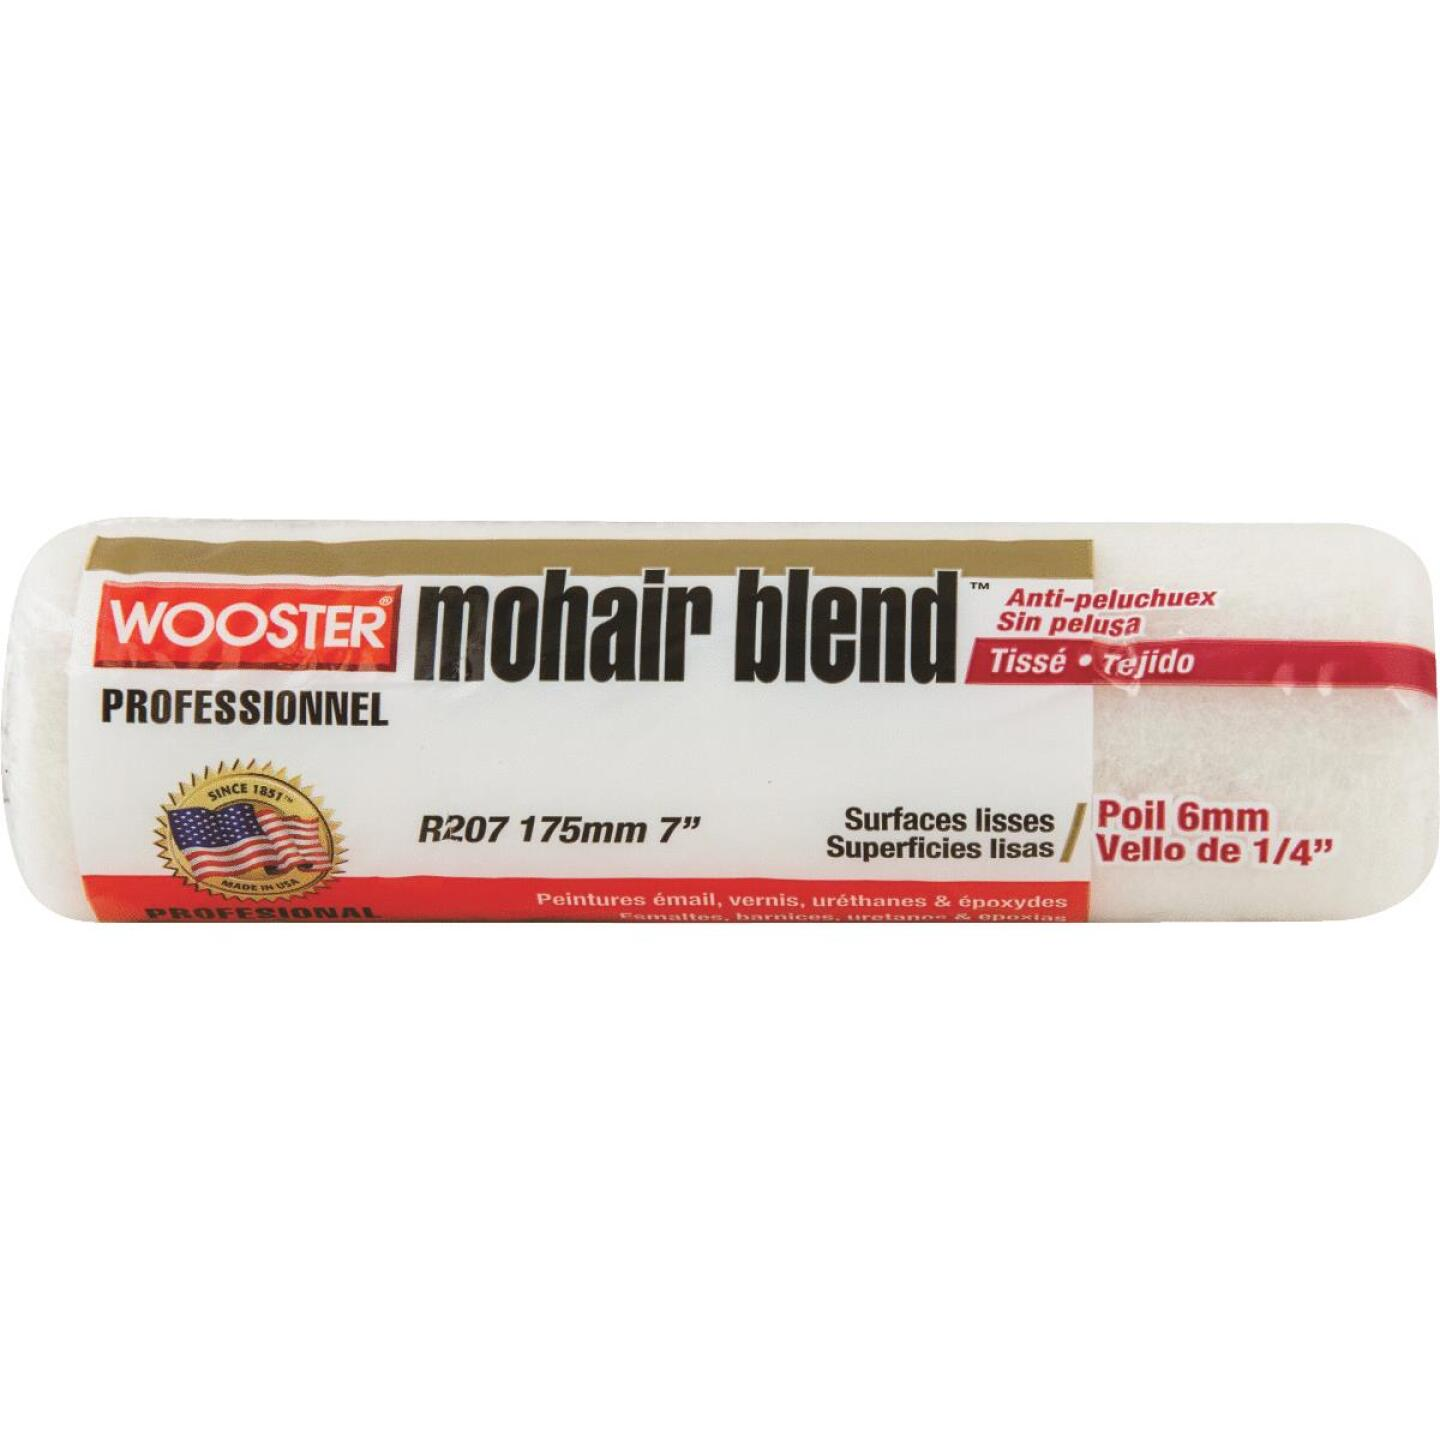 Wooster Mohair Blend 7 In. x 1/4 In. Woven Fabric Roller Cover Image 1